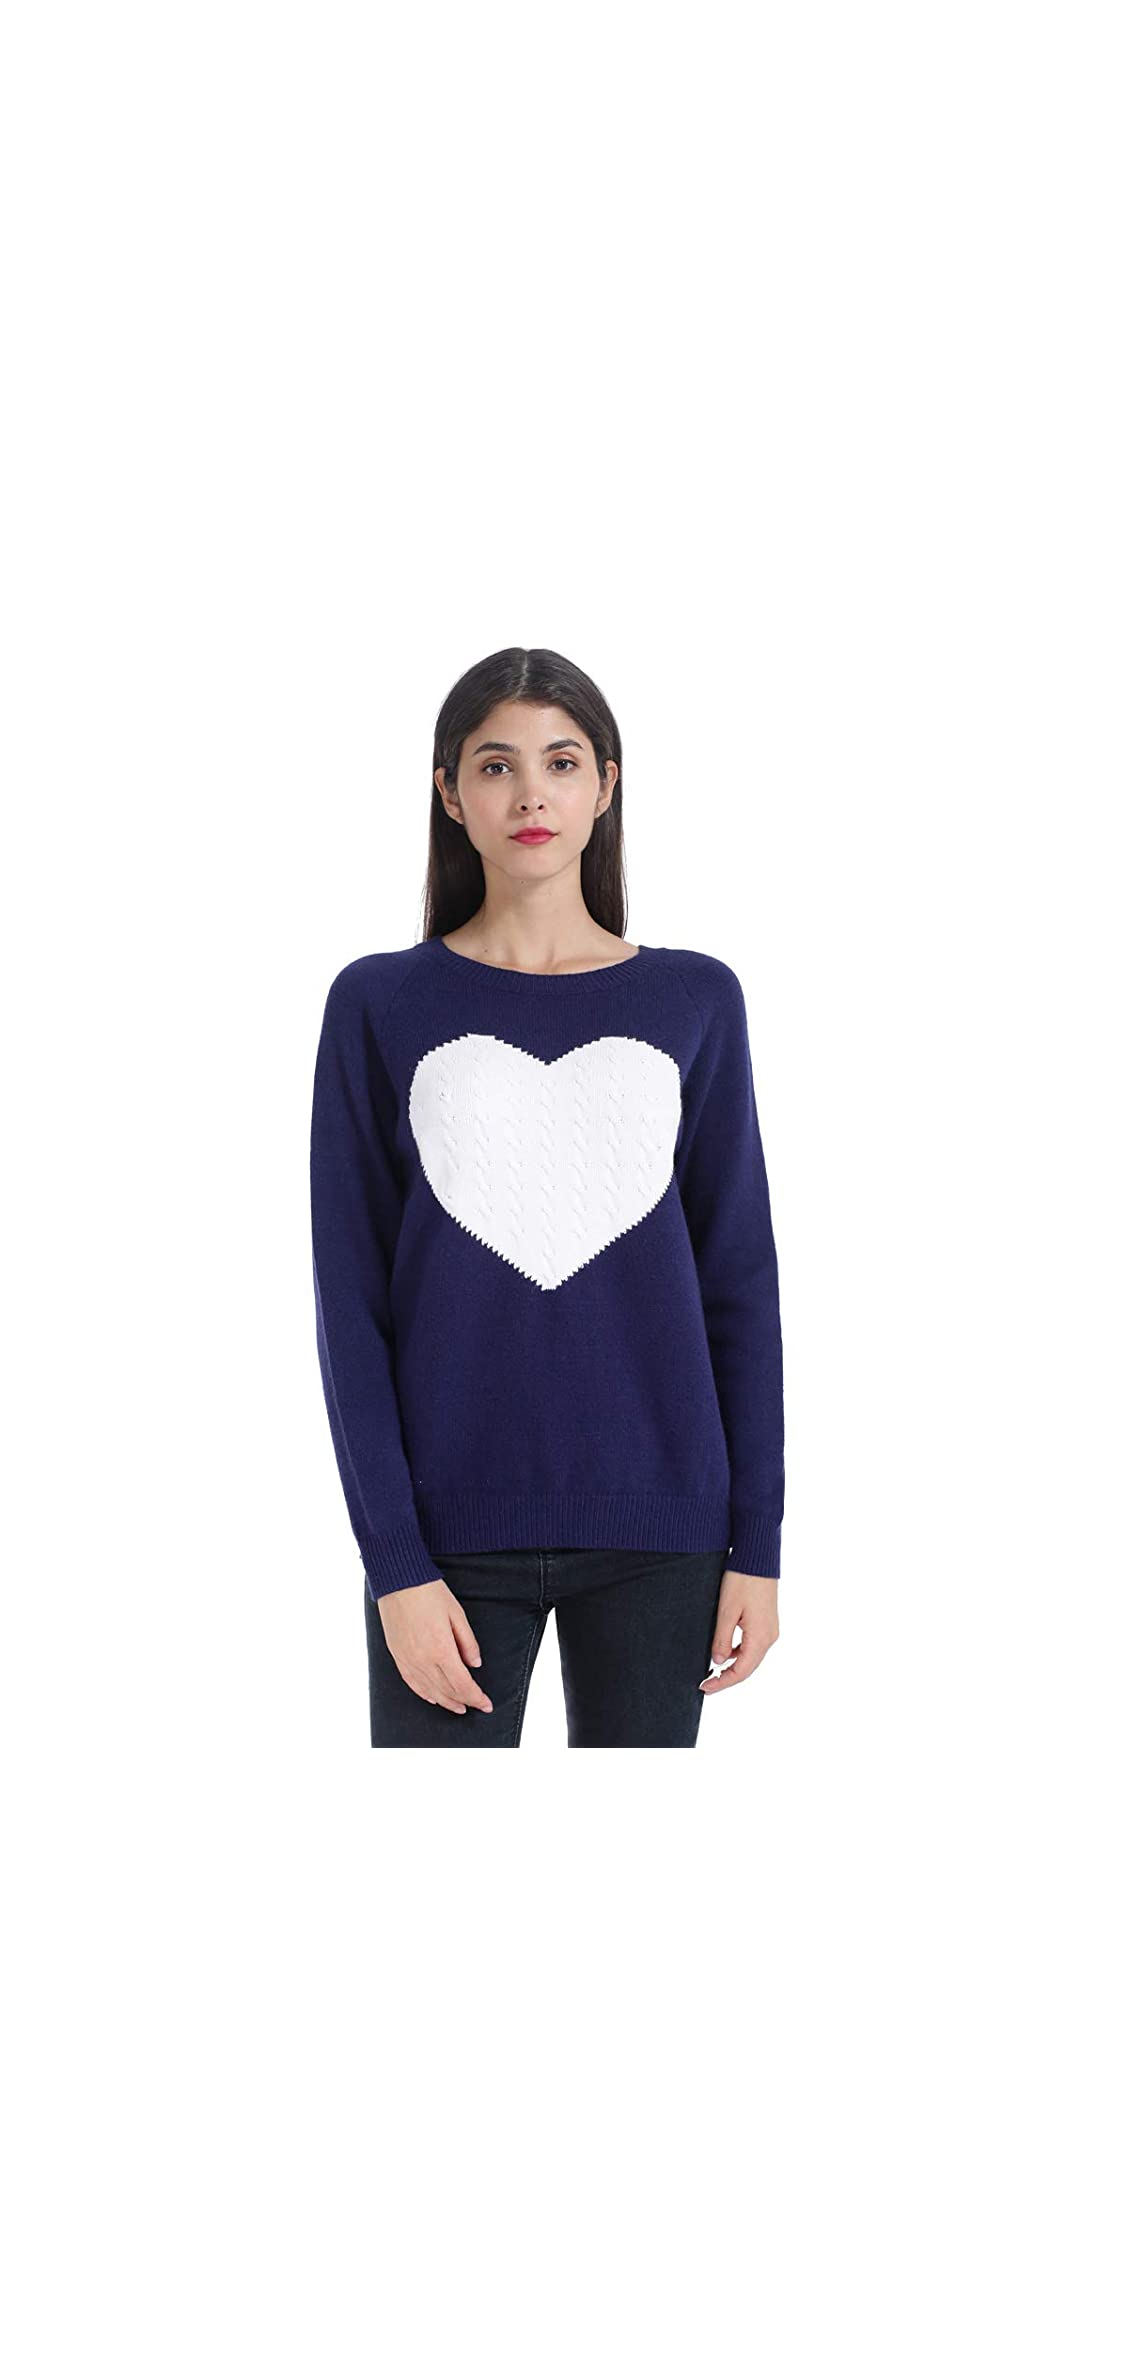 Long Sleeve Heart Print Knitted Pullover Sweater Tops